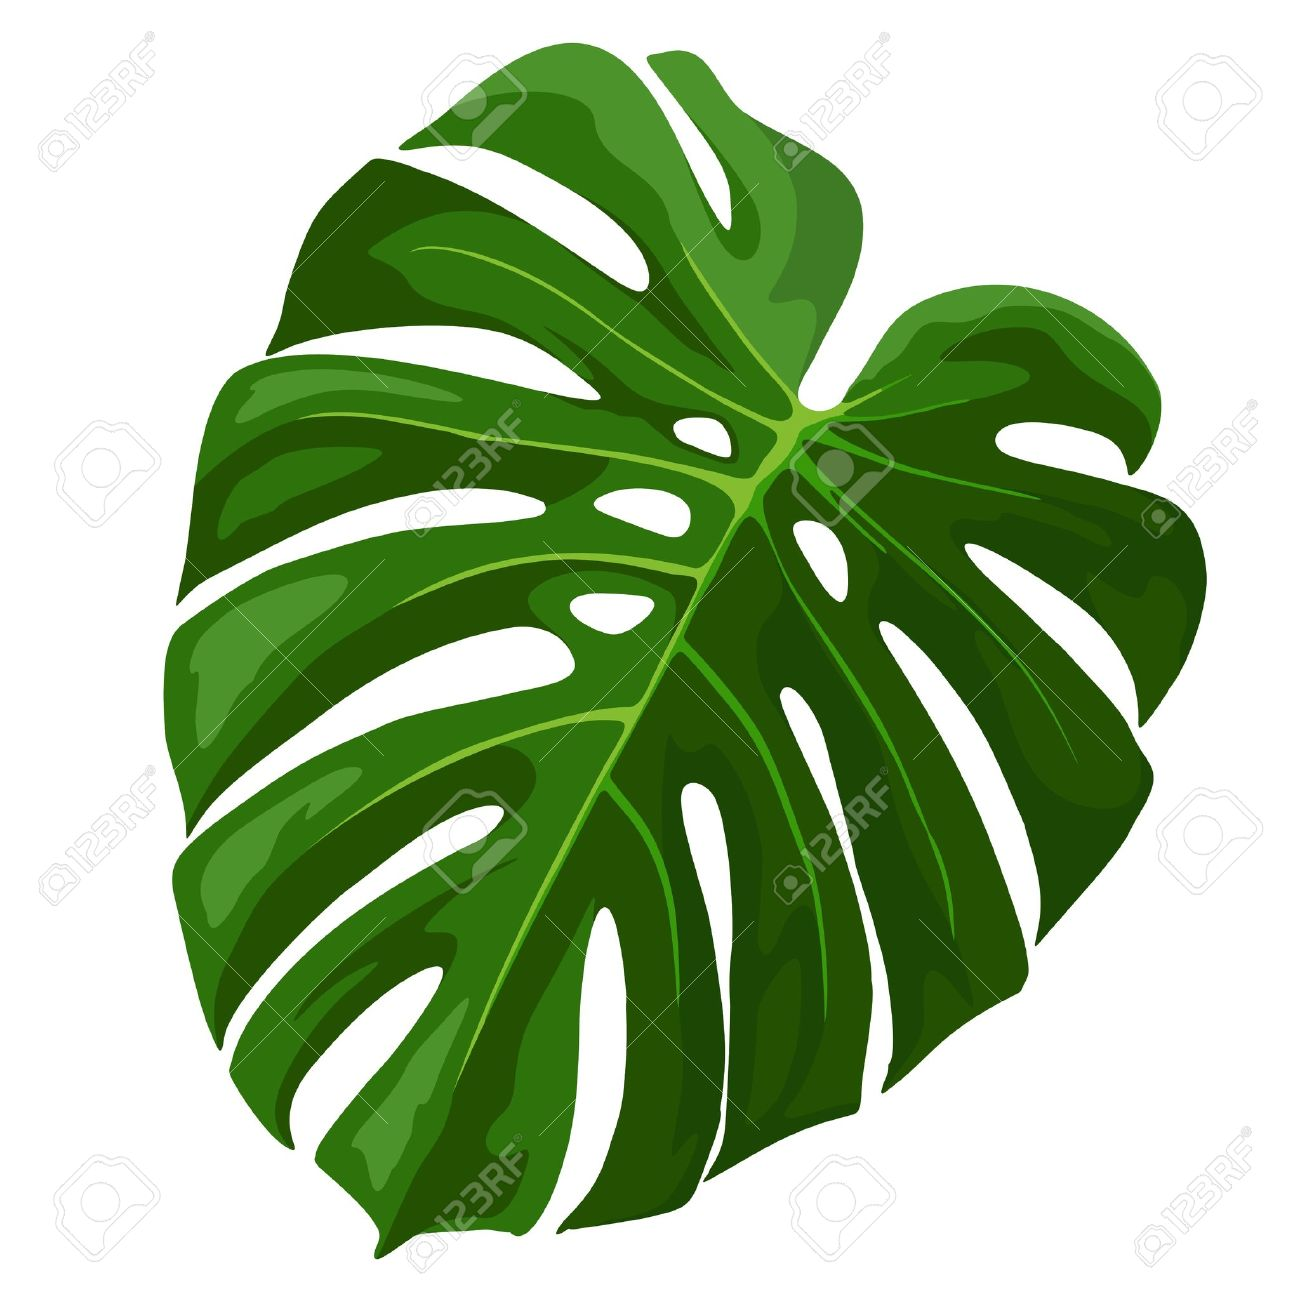 Tropical Leaf Monstera Plant Isolated On White Royalty Free Cliparts Vectors And Stock Illustration Image 59196169 Here you can explore hq monstera leaf transparent illustrations, icons and clipart with filter setting polish your personal project or design with these monstera leaf transparent png images, make it. tropical leaf monstera plant isolated on white